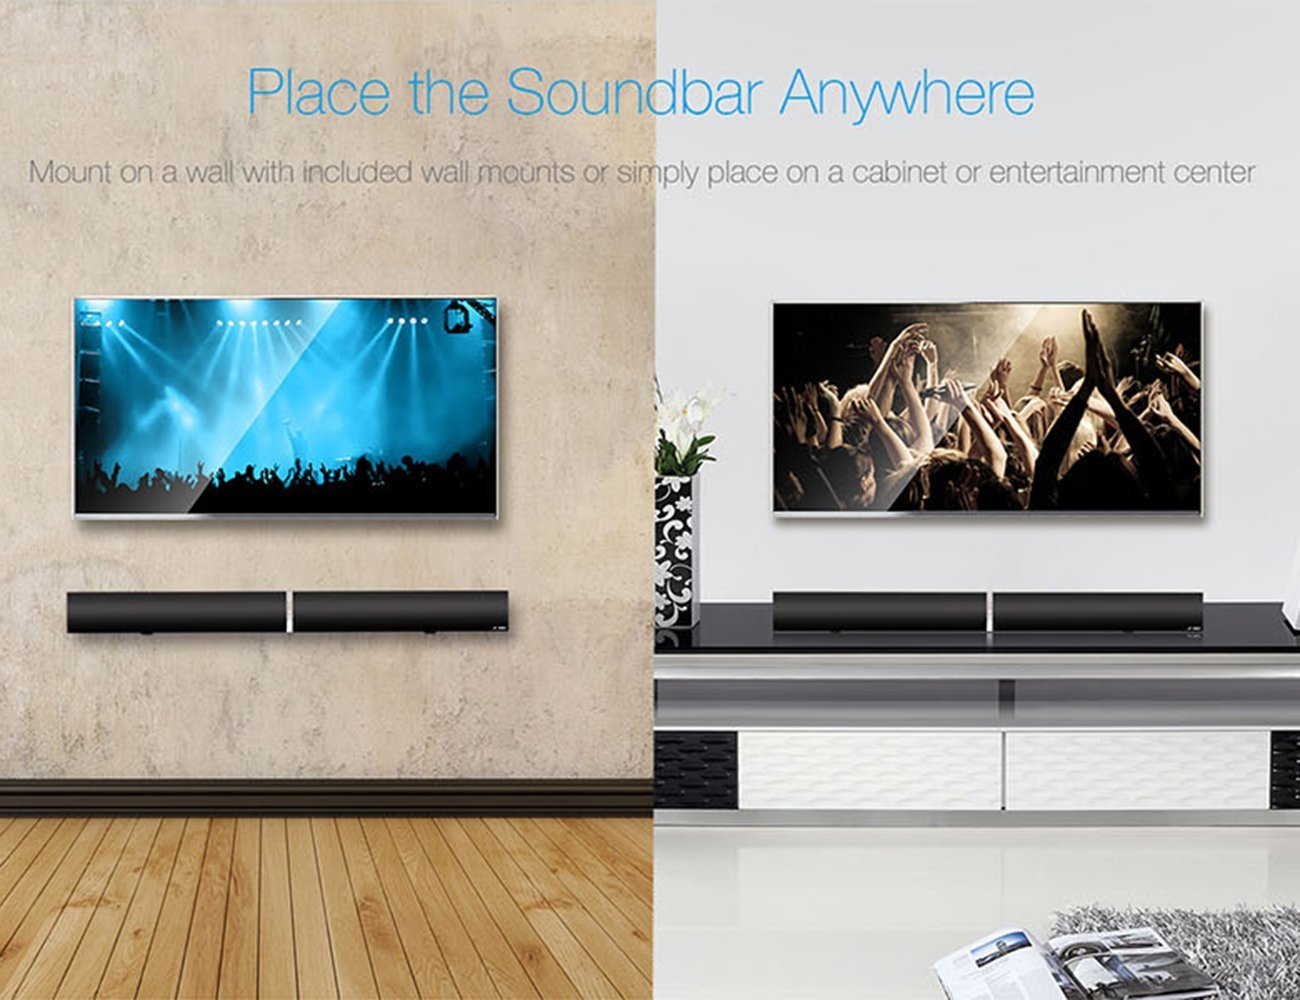 LuguLake TV Sound Bar 3D Surround Wireless Speaker for Home Theater39 inch 40 Watts MultiConnection USB Wall Mount